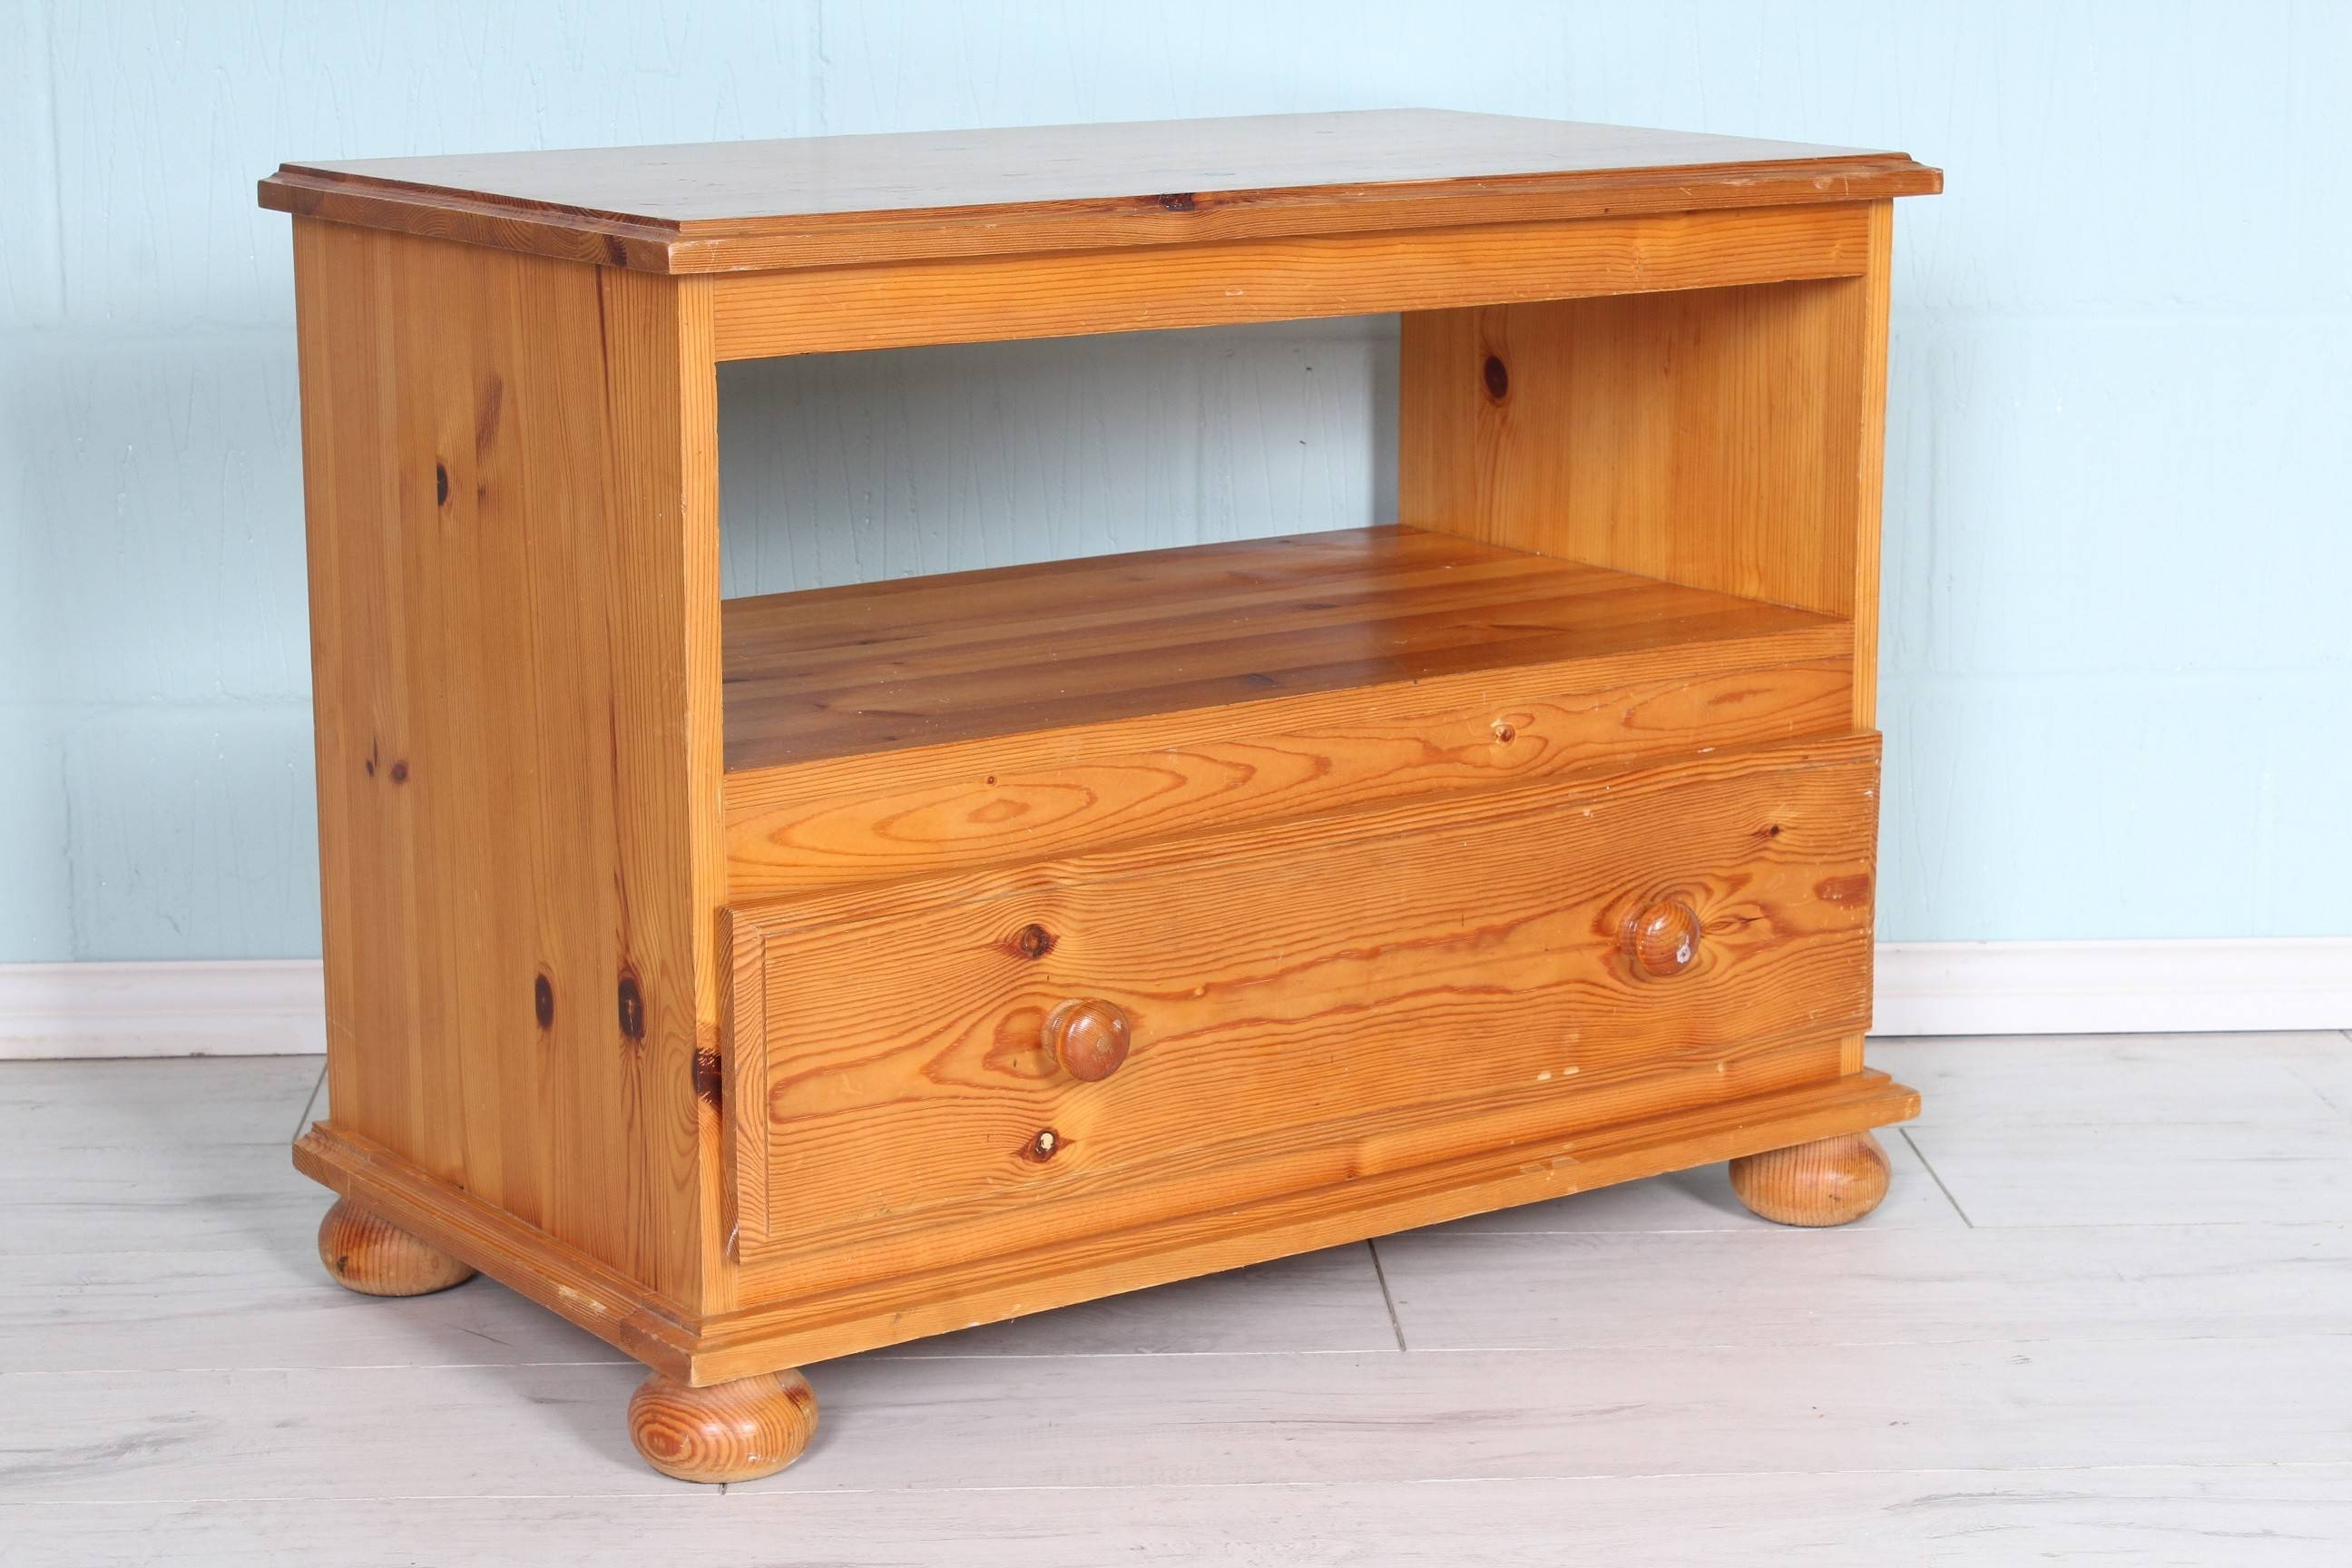 Pine Tv Unit With Shelf And Drawer, Lots Of Age Marks So Could within Pine Tv Unit (Image 9 of 15)